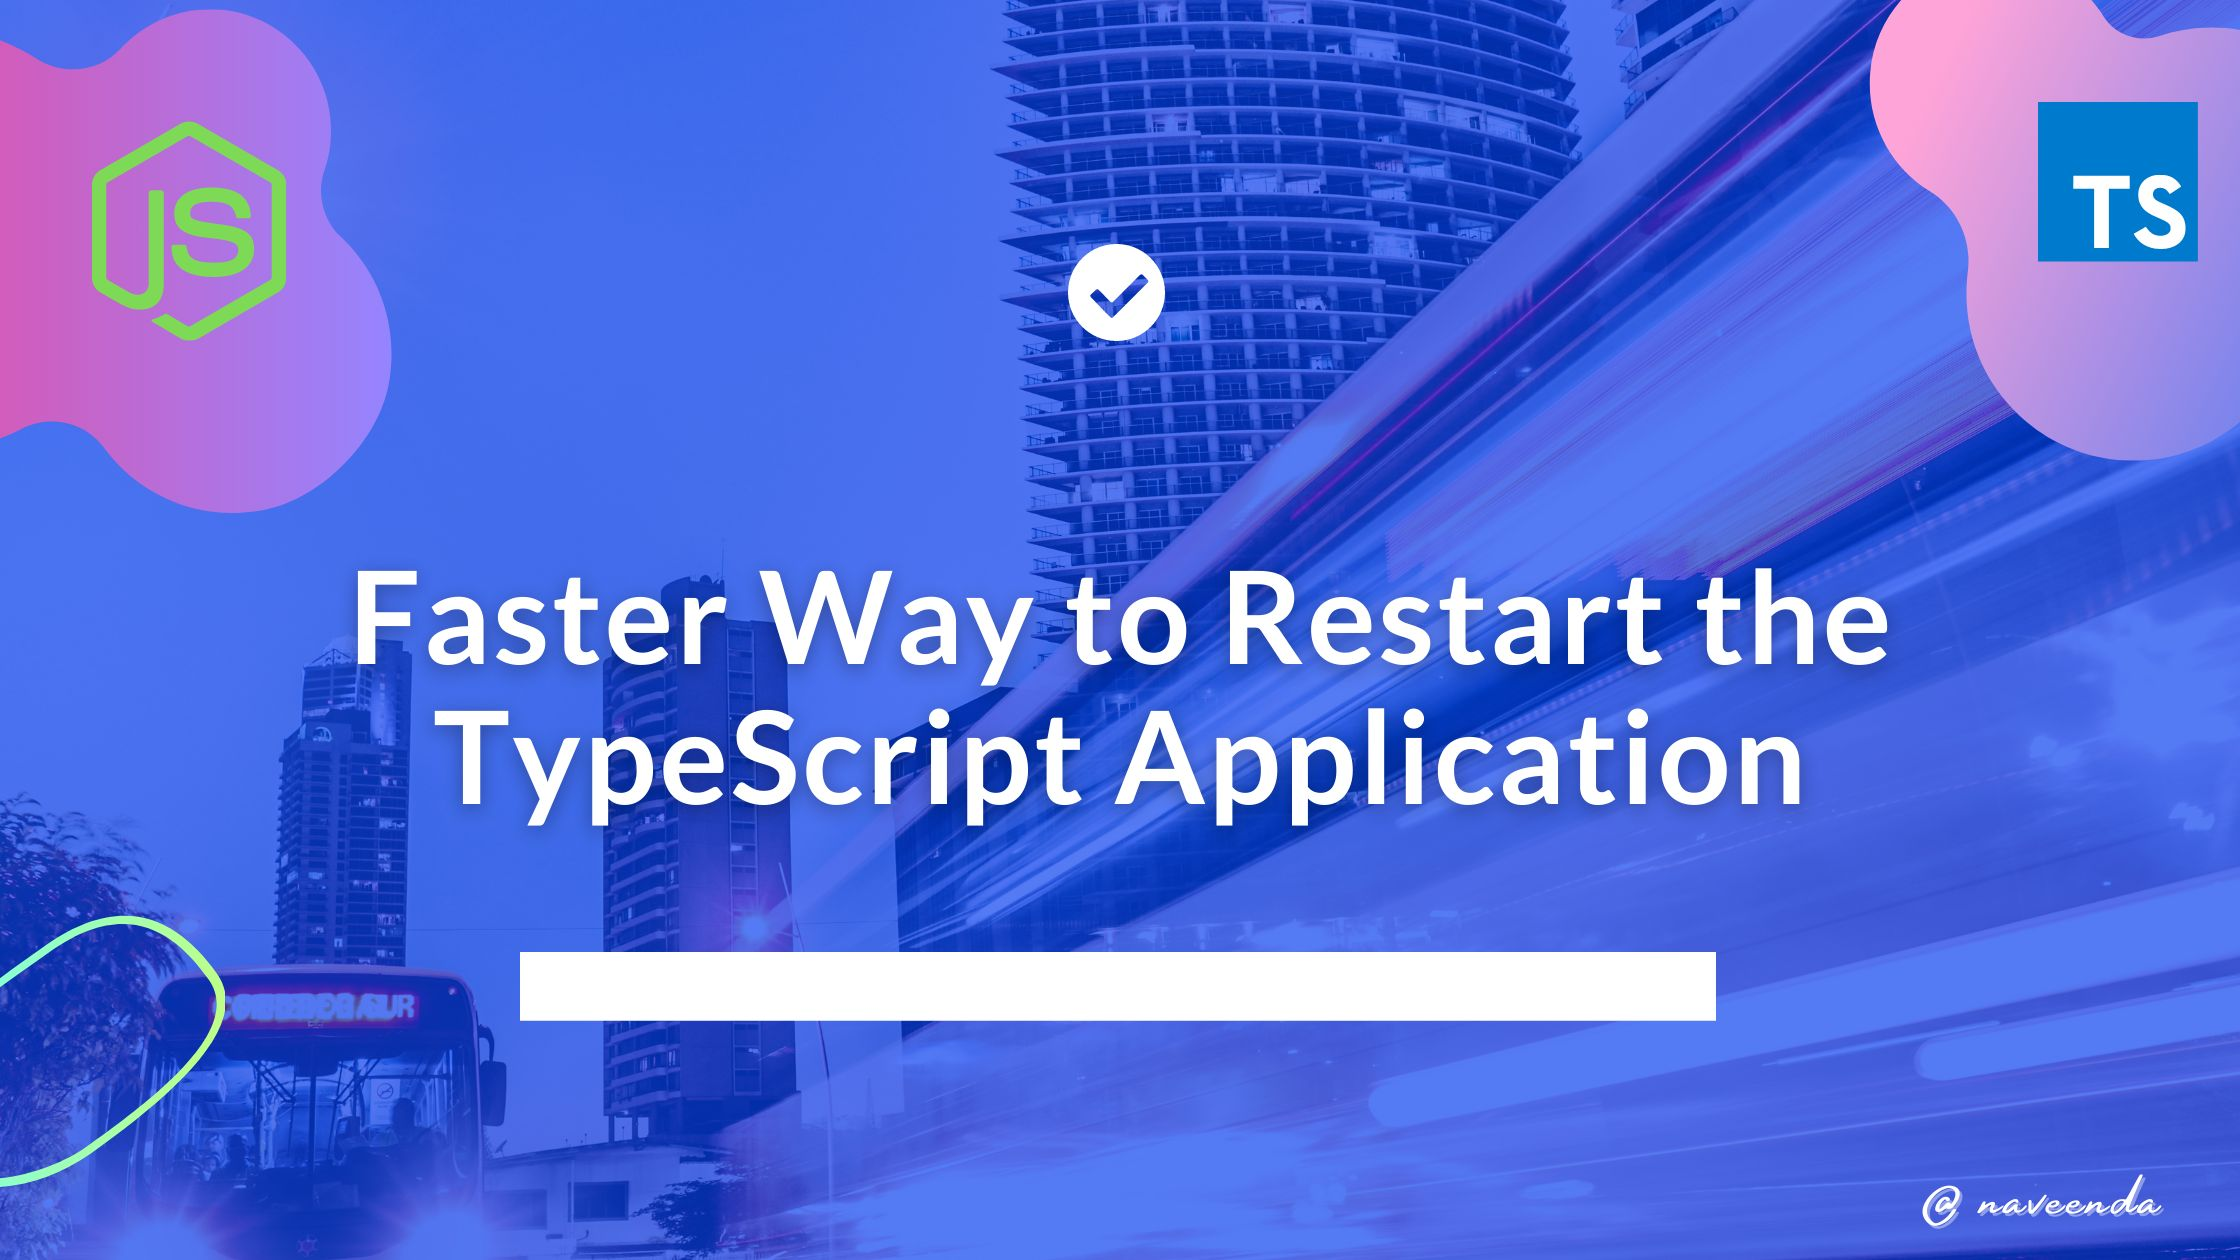 /how-to-restart-the-typescript-nodejs-application-fast-v11d3t3f feature image